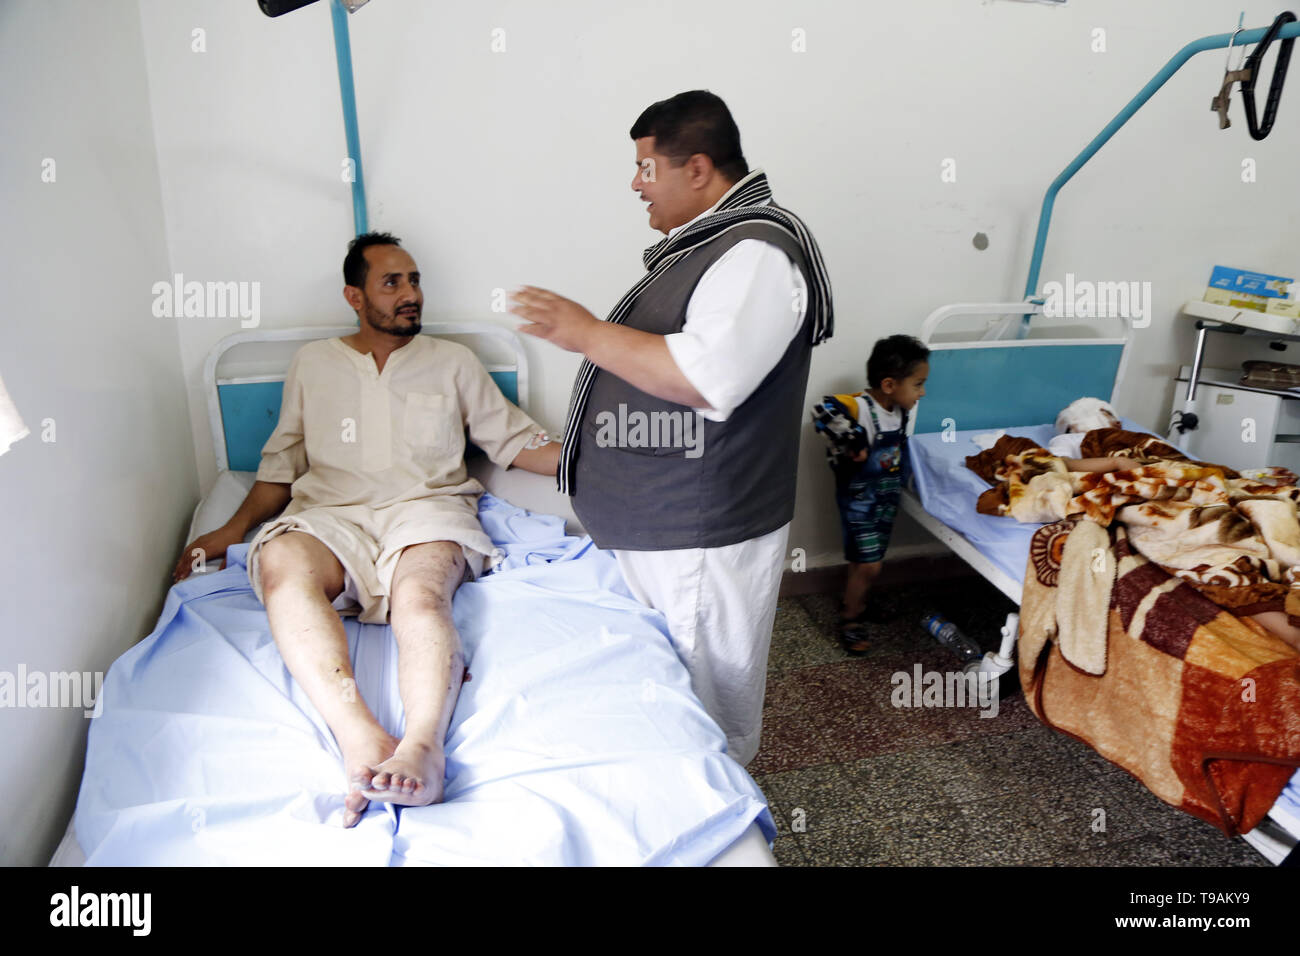 Sanna, Yemen. 17th May, 2019. People injured in an airstrike receive treatment at a hospital in Sanaa, Yemen, May 17, 2019. The Saudi Arabia-led coalition launched airstrikes on Houthi rebels' targets in the Yemeni capital Sanaa on Thursday morning. At least six-member family were killed and more than 30 others were wounded when a coalition airstrike hit a house in the center of Sanaa, the rebel-controlled Health Ministry said in a statement, adding that the death toll could rise as many injured remain in critical condition. Credit: Mohammed Mohammed/Xinhua/Alamy Live News - Stock Image